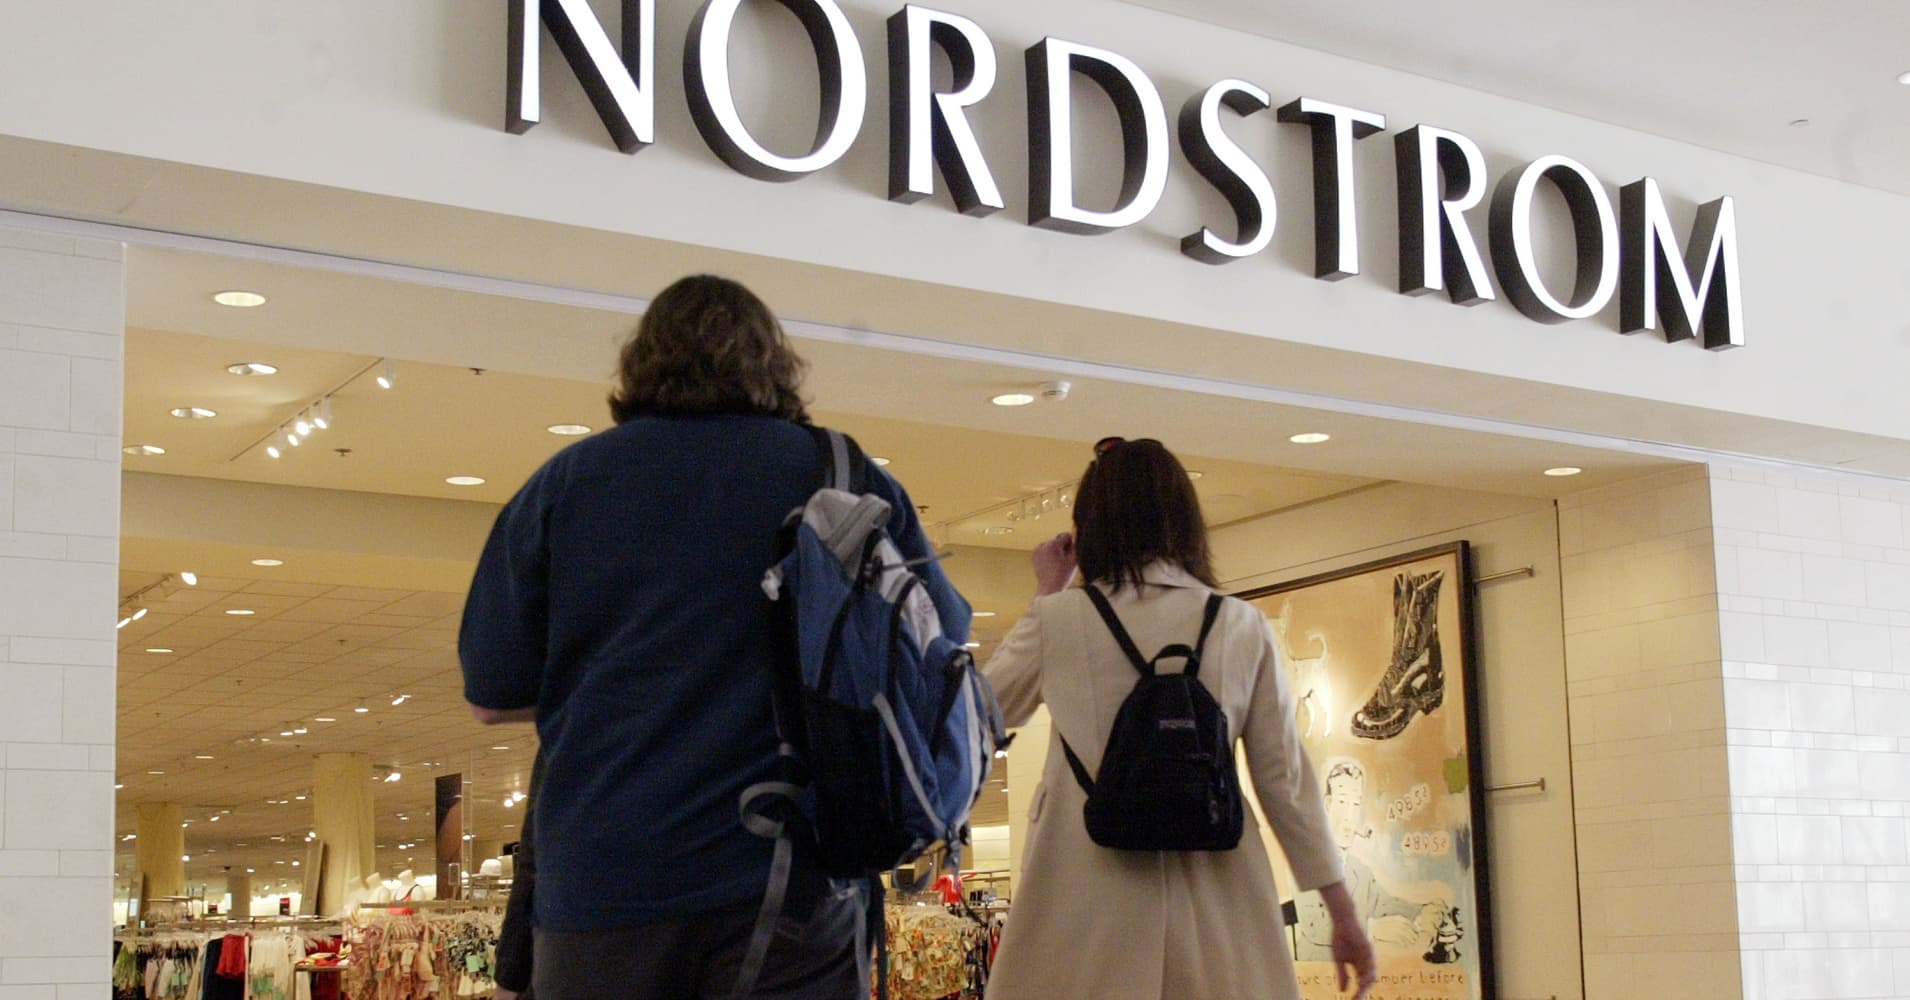 Kohl's, Nordstrom results deepen retail jitters